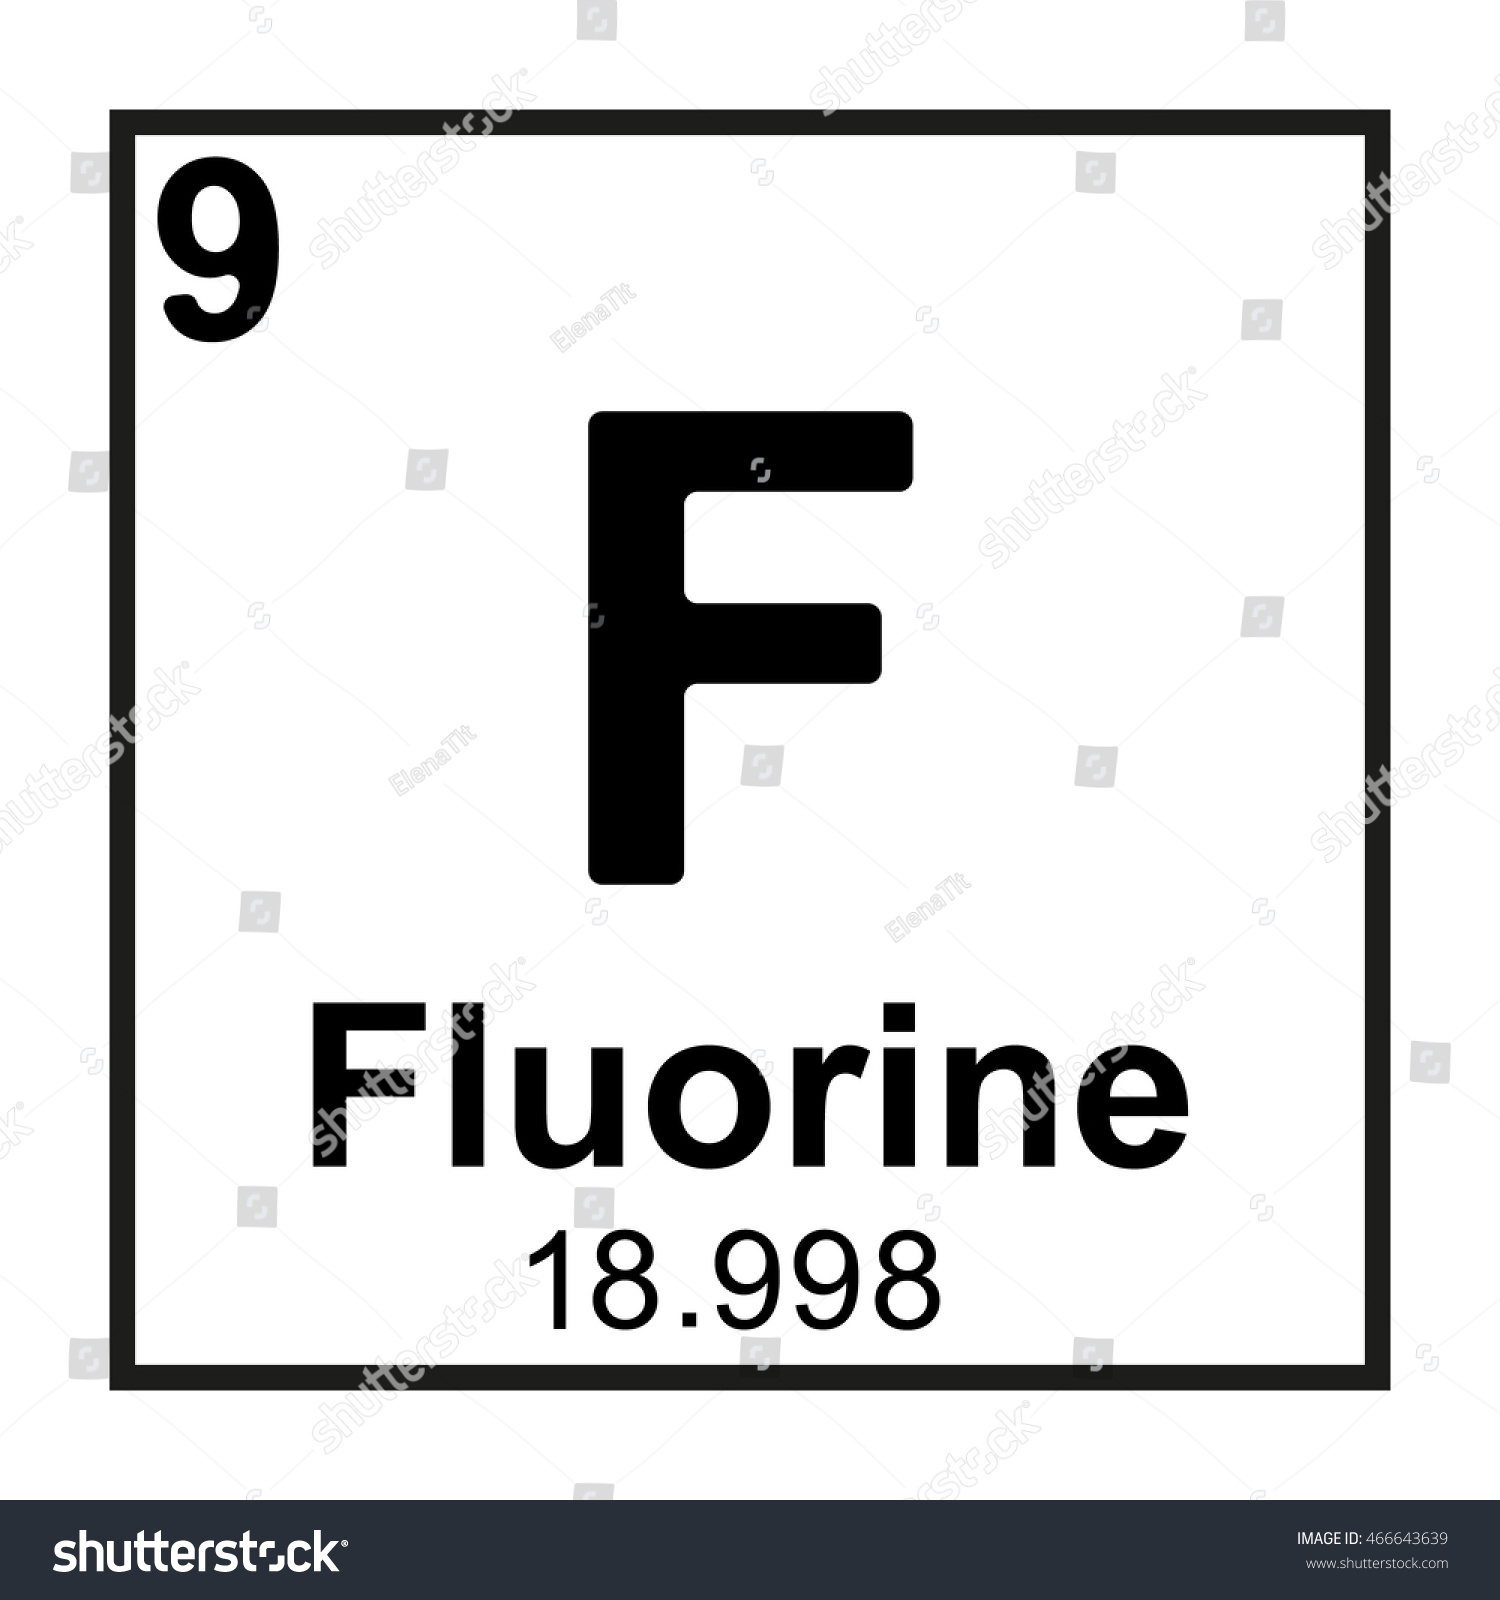 Periodic table element fluorine stock vector 466643639 shutterstock periodic table element fluorine gamestrikefo Image collections